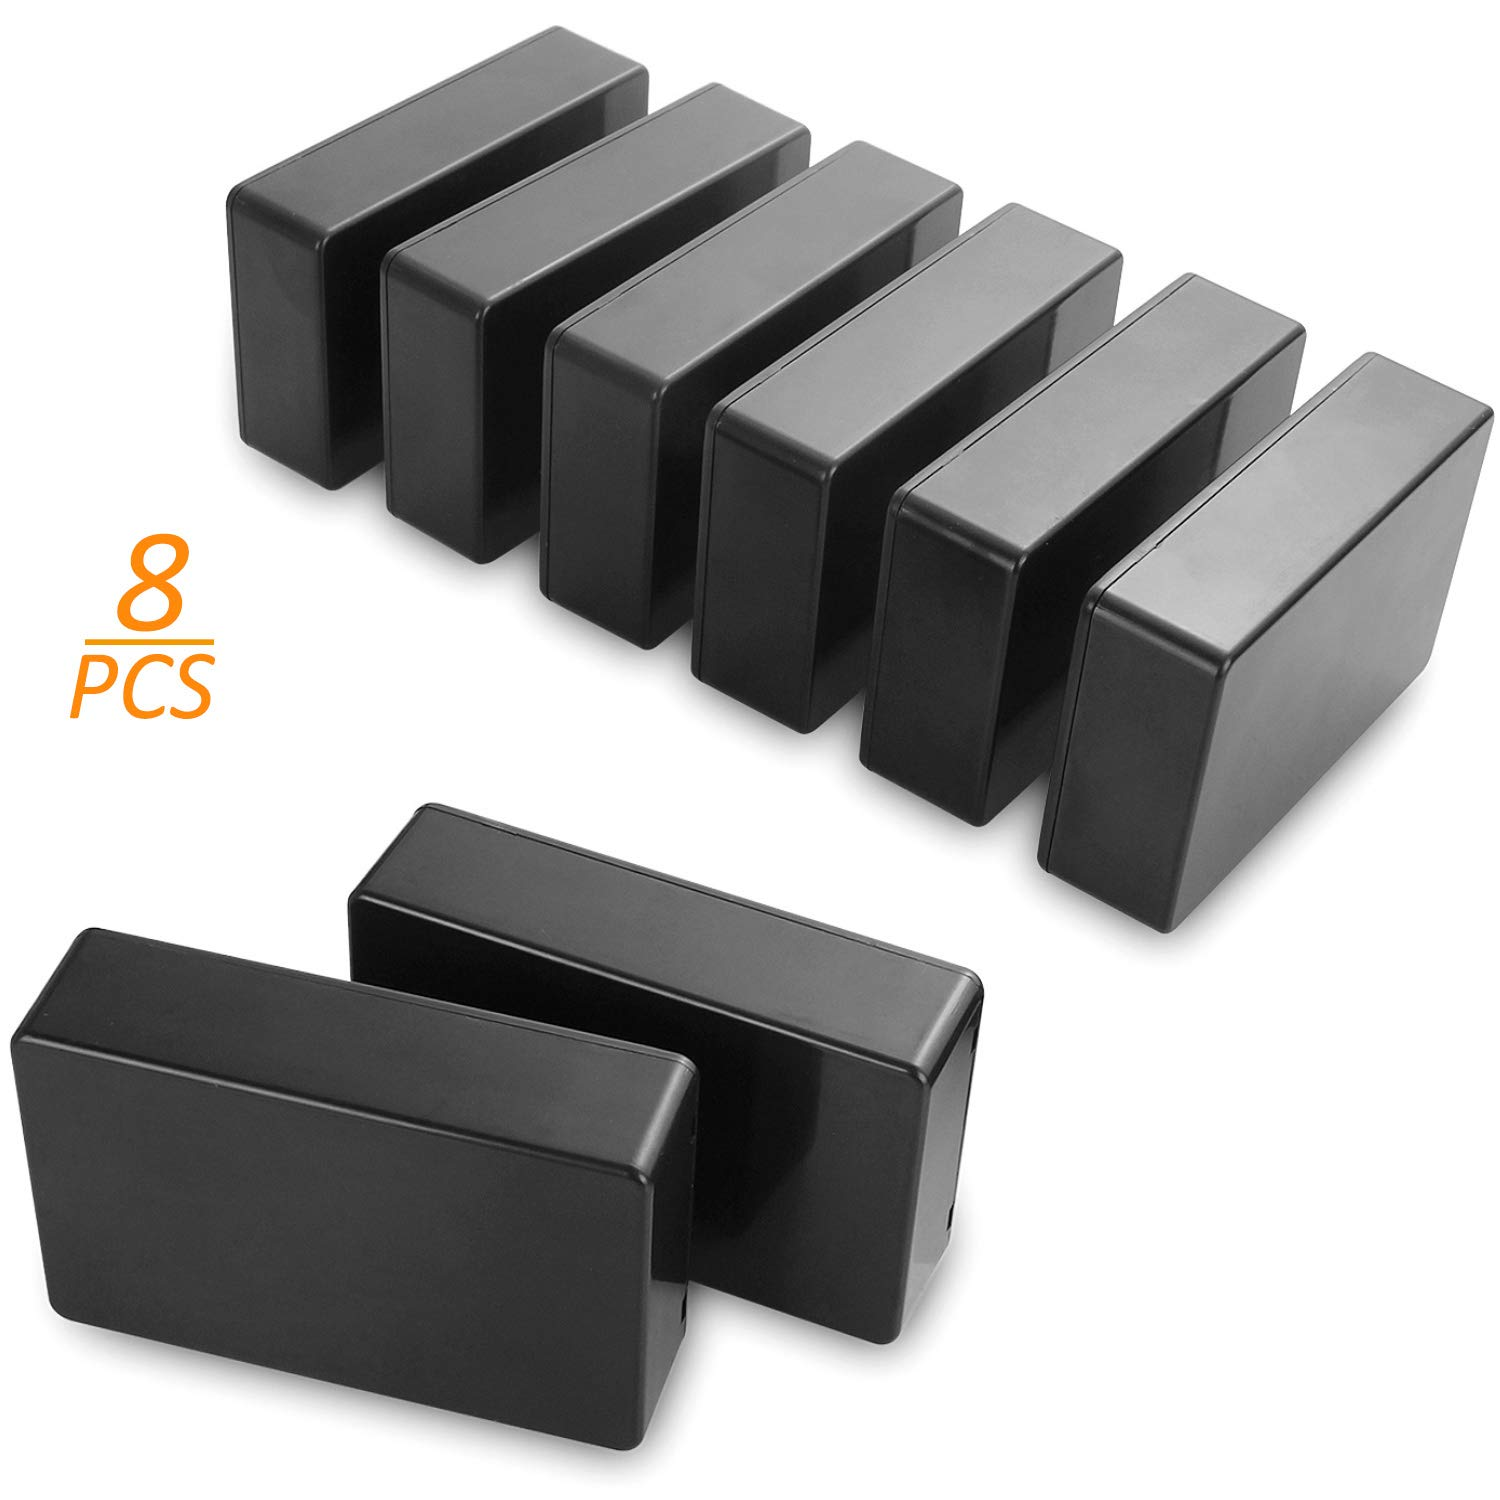 8 Pcs Project Boxes Small Plastic Waterproof Junction Case, 100 x 60 x 25 mm Black ABS Electrical Project Box DIY Power Junction Box for Electronic Project STARVAST